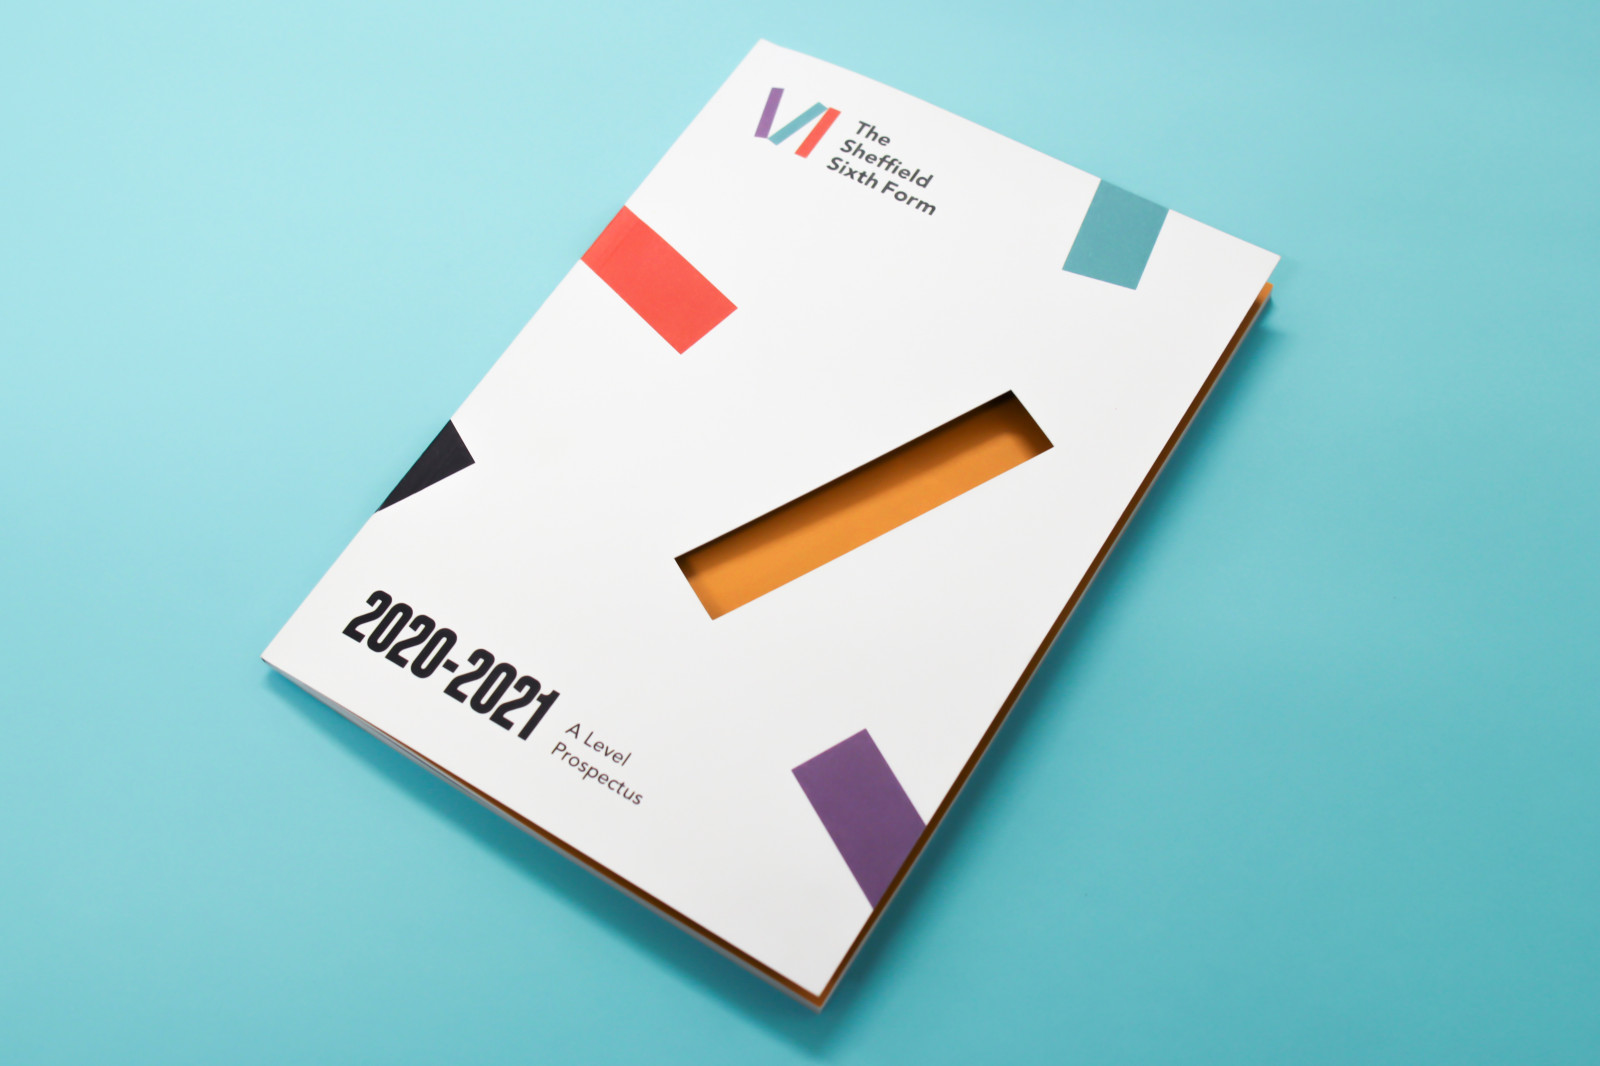 Gallery image for Sheffield College 6th Form Brand project